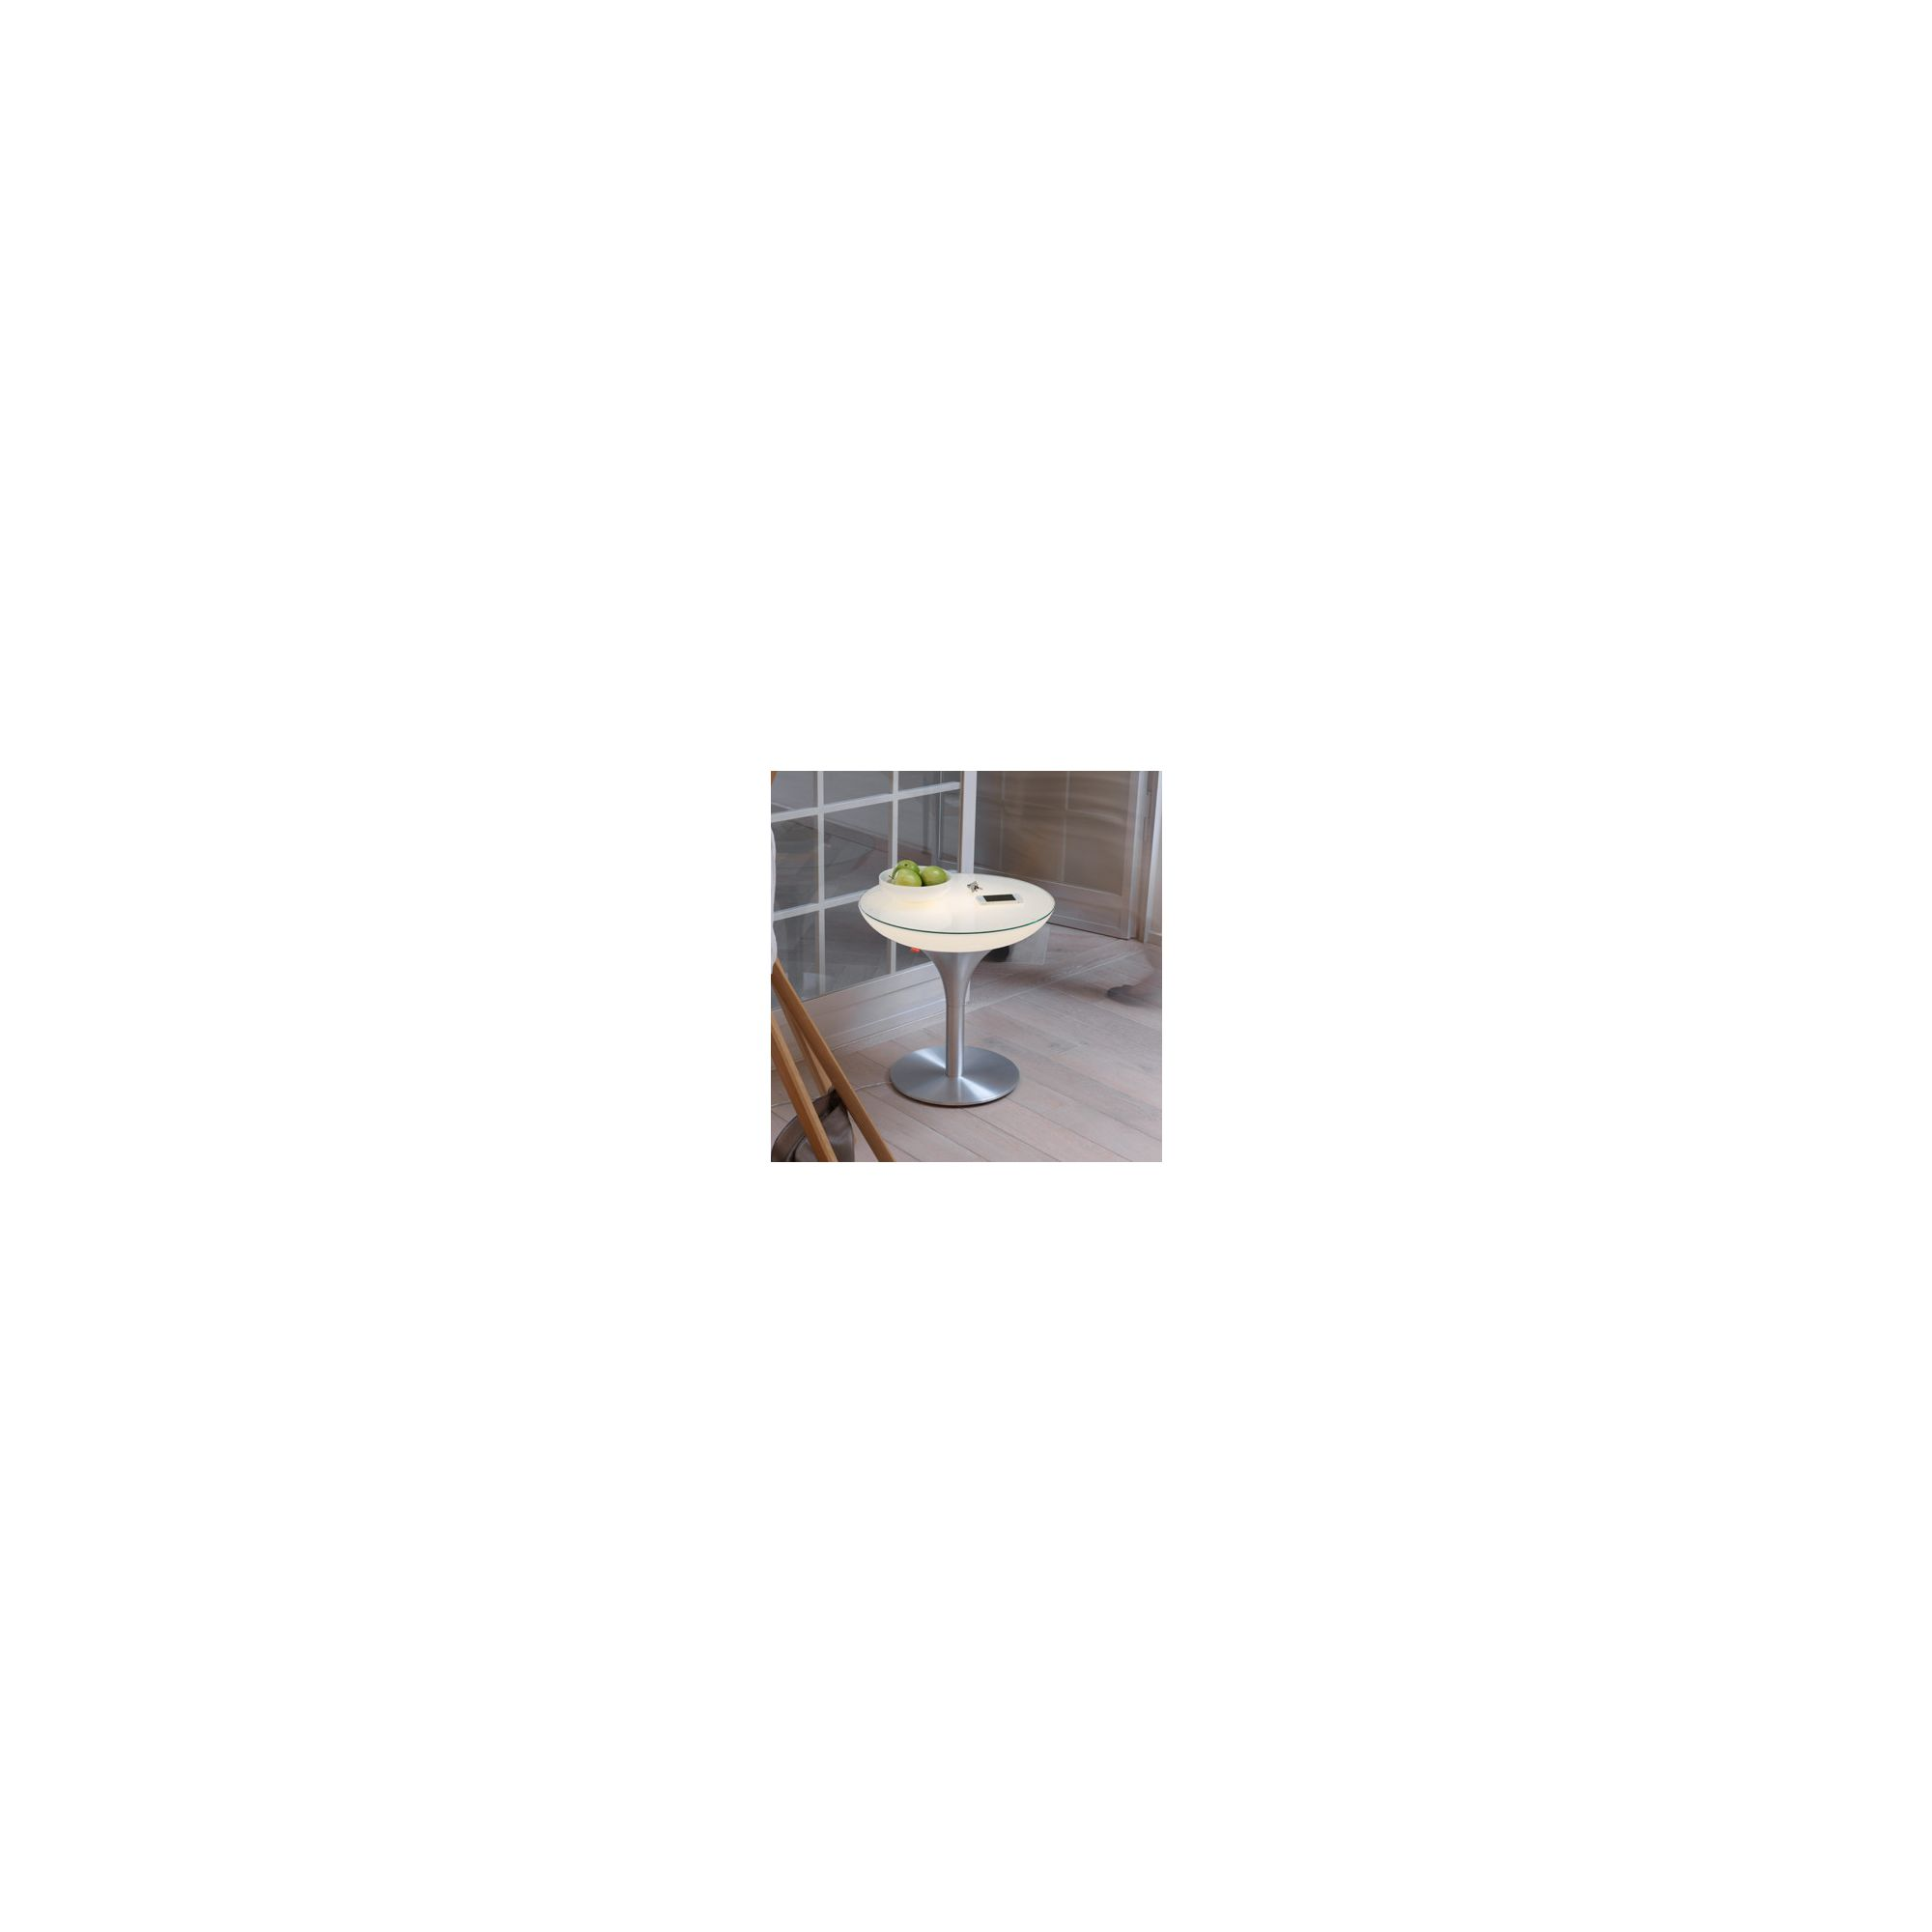 Moree Lounge Table with Table Glass Top at Tesco Direct